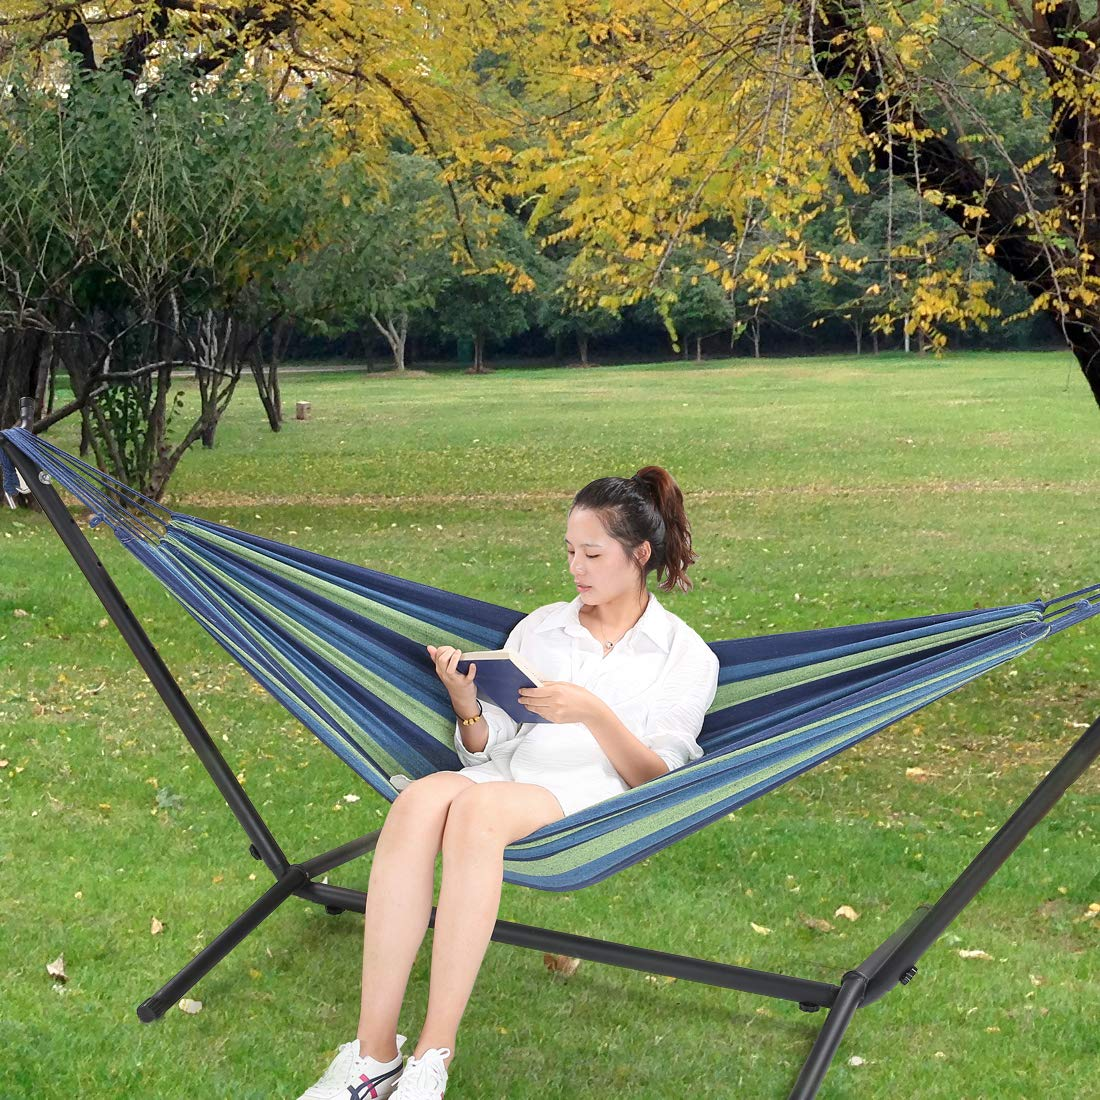 HONGJUN Double Hammock with Steel Stand - Space Saving 2 Person Adjustable and Portable Stand Hammocks,450 Pounds Capacity(Blue Stripe) by HONGJUN (Image #6)